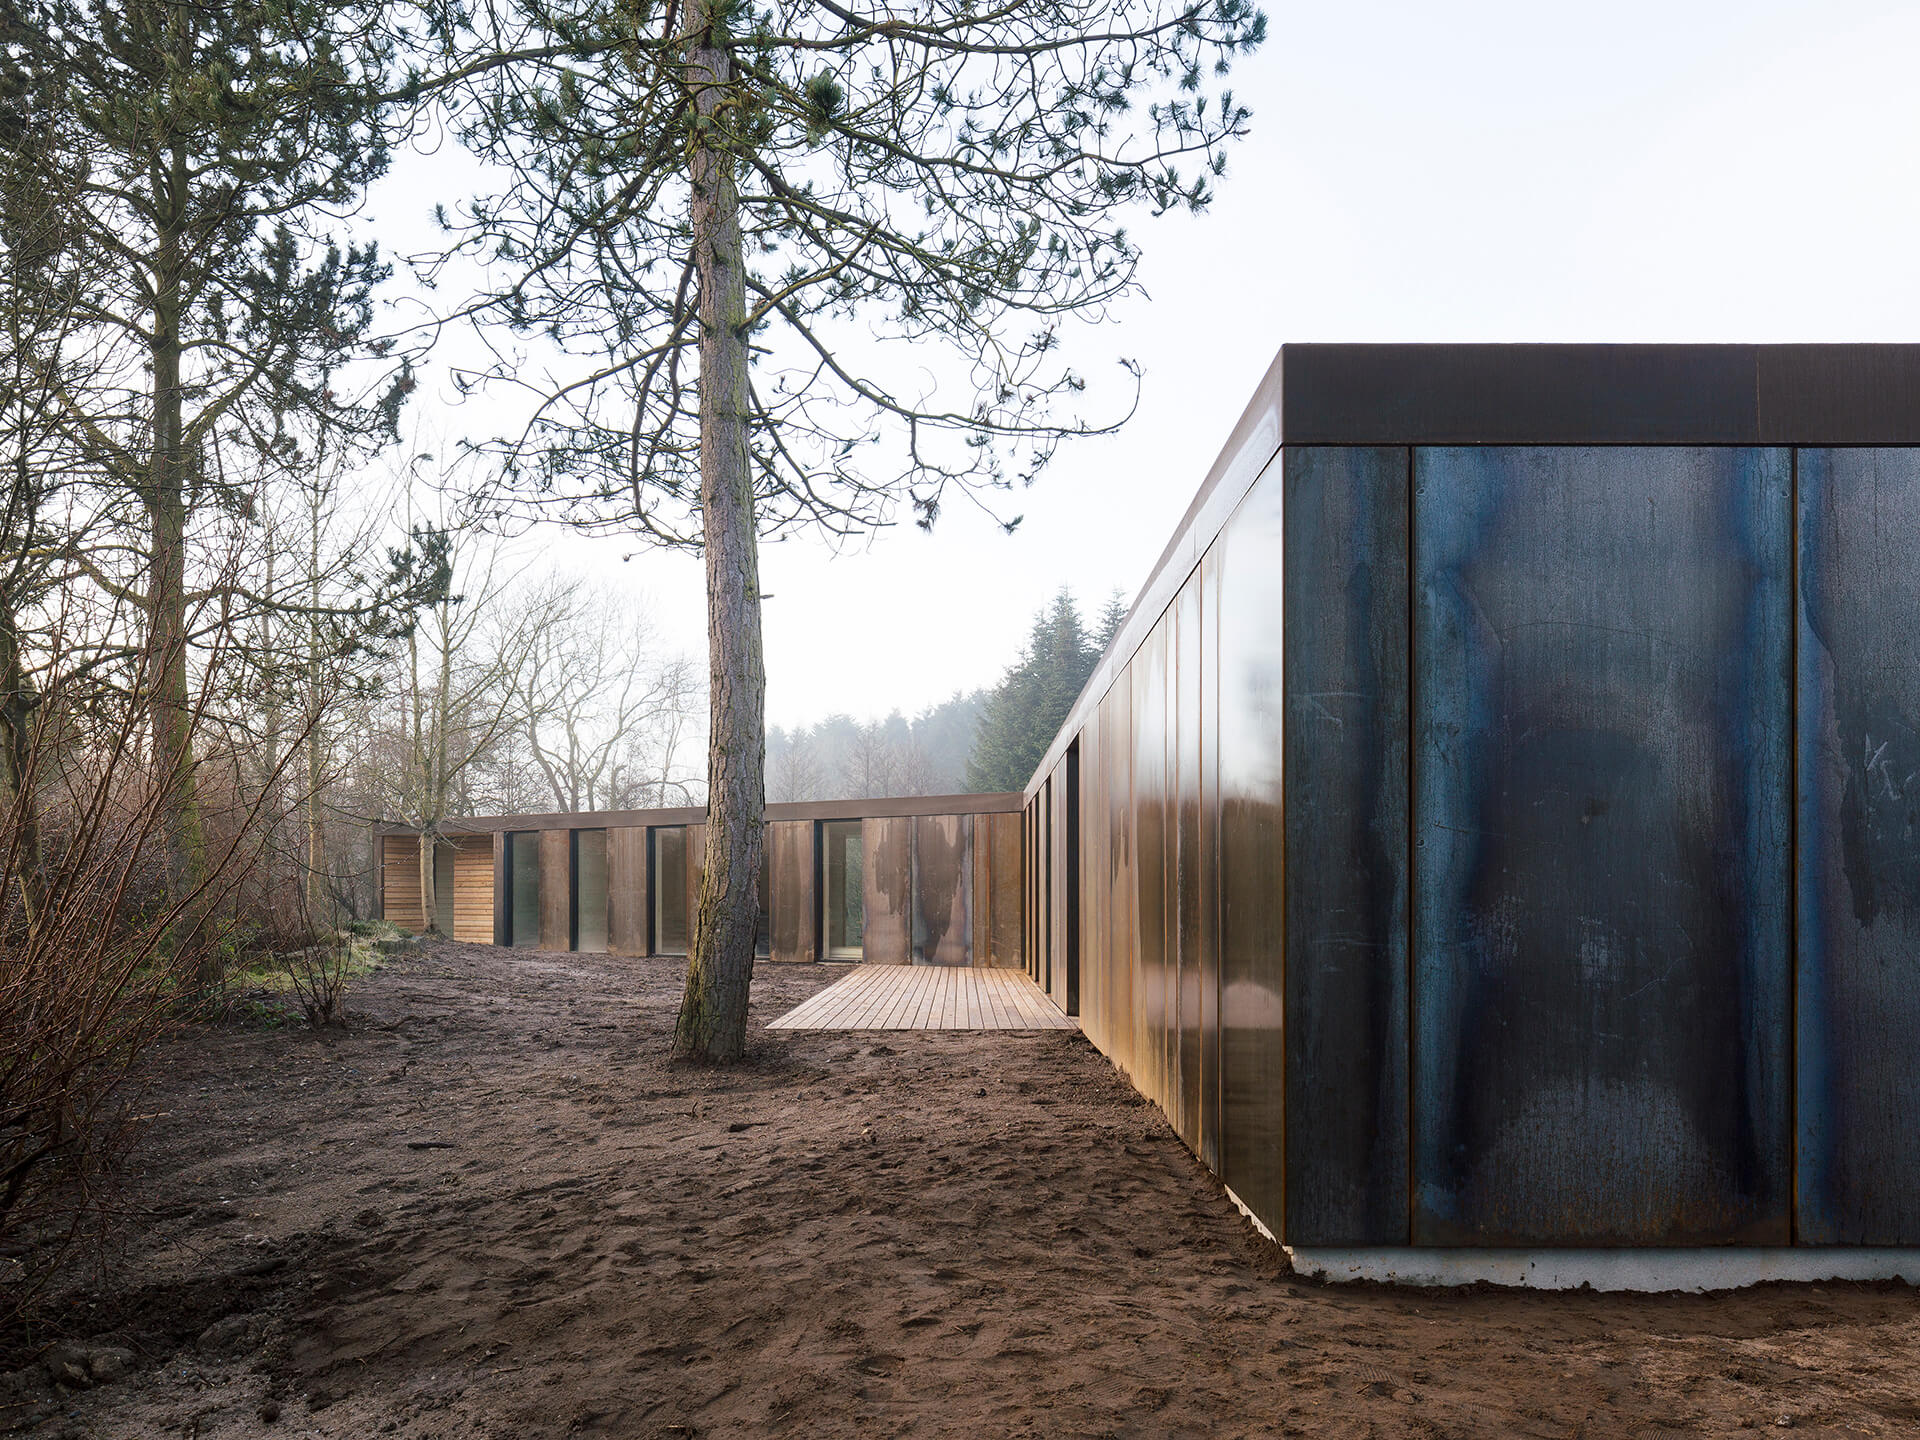 Villa Korup was built in just three days, using prefabrication construction methods | Villa Korup designed by Jan Henrik Jansen Arkitekter with Marshall Blecher | STIRworld